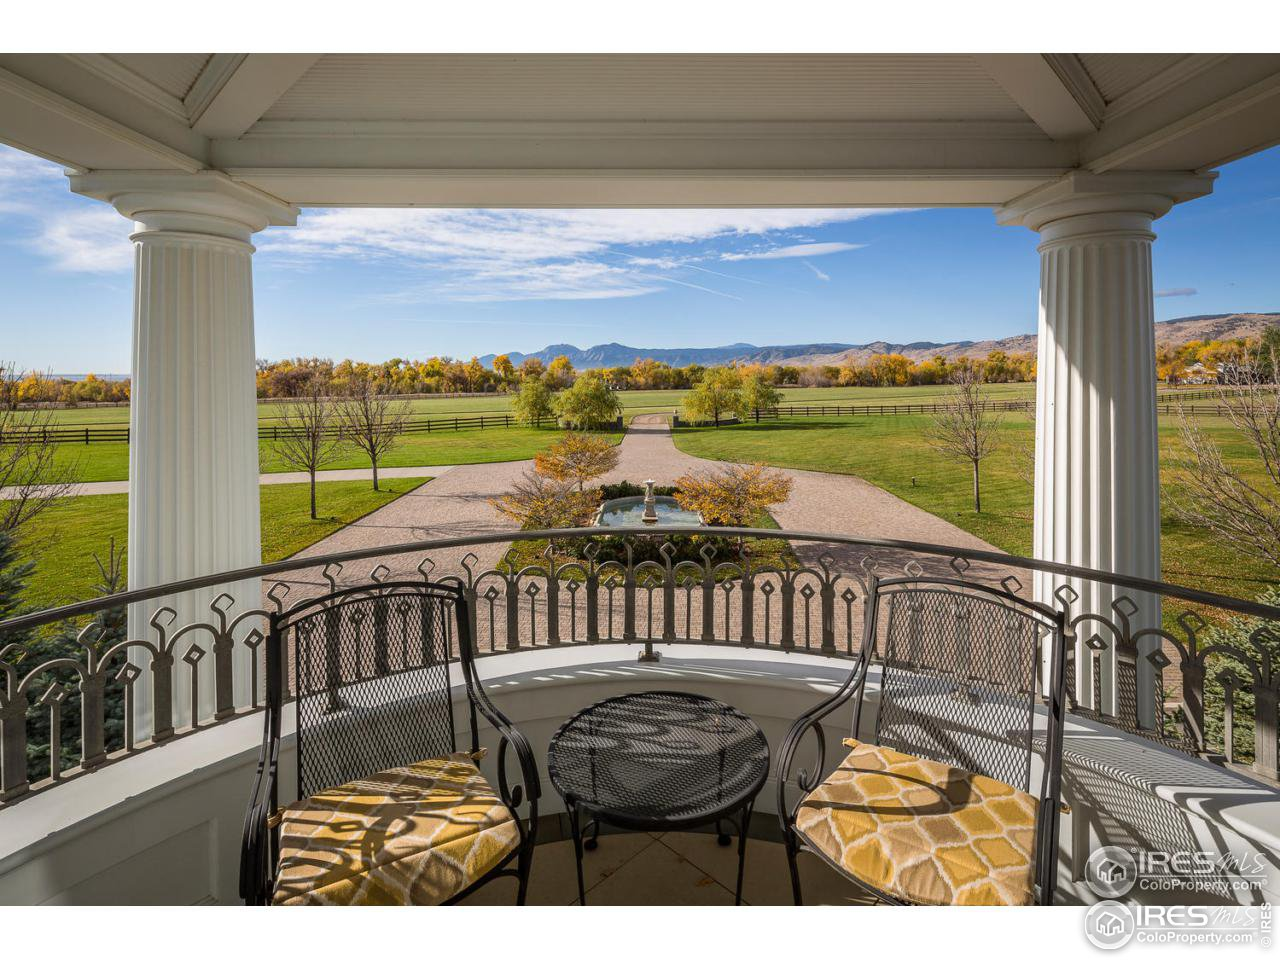 Outdoor entertaining on western patio with foothill views.